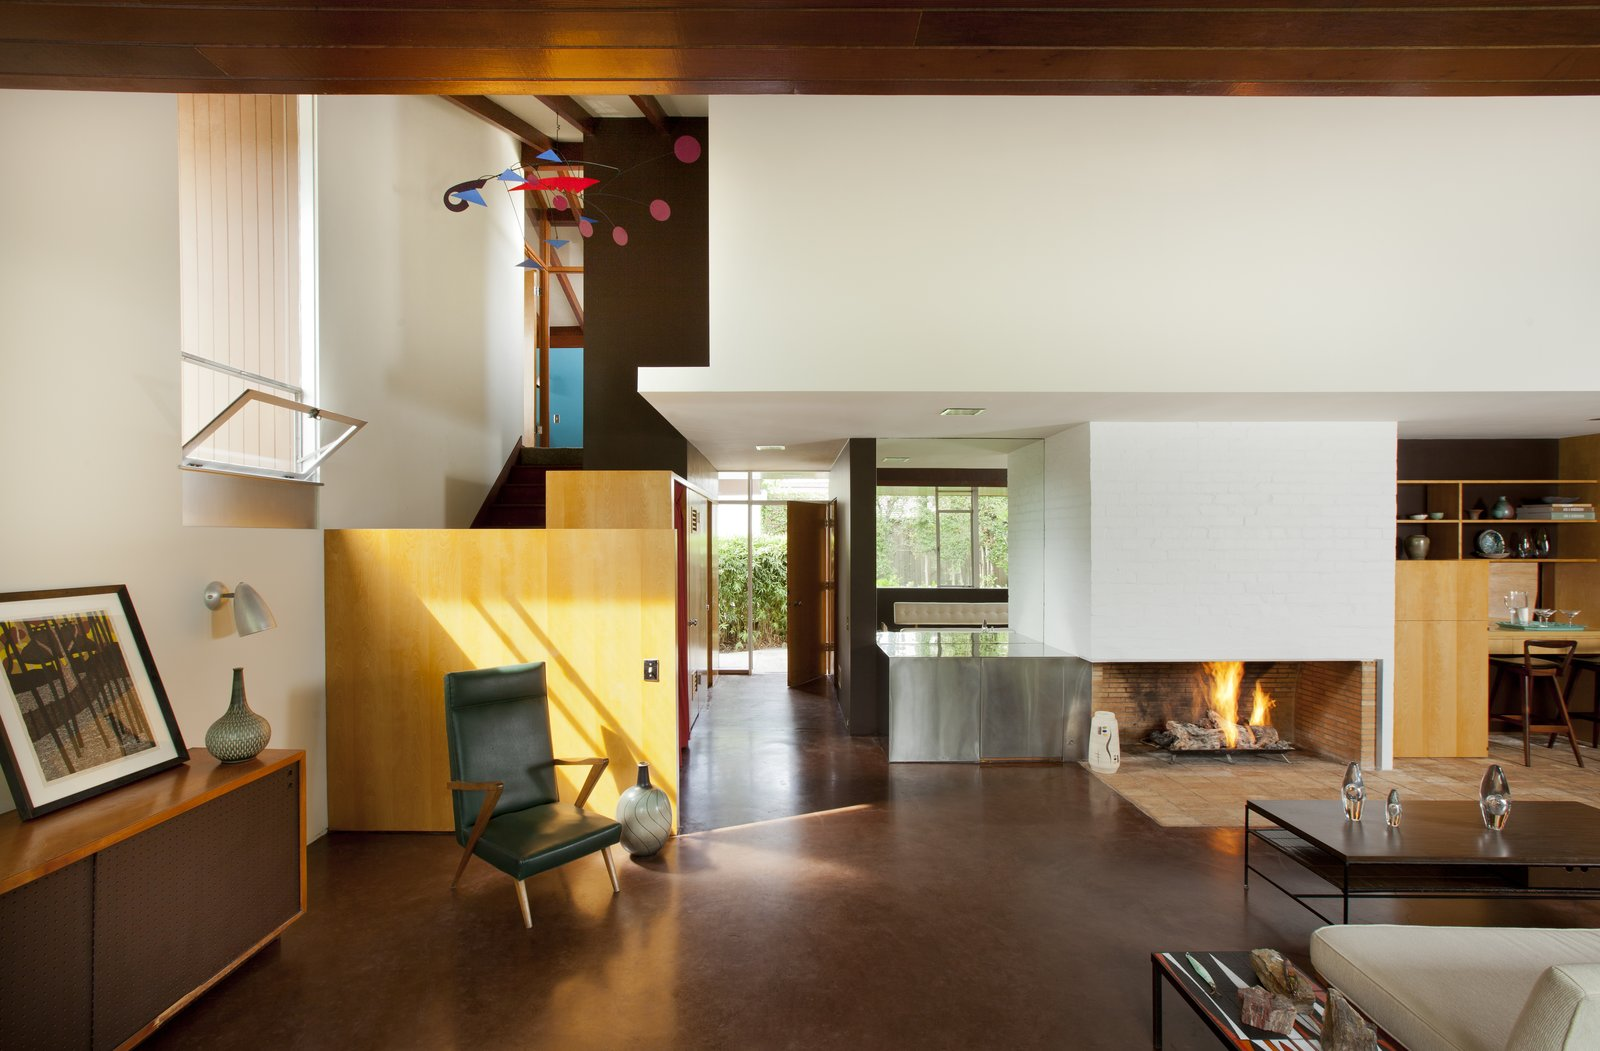 Built in 1953 by Richard Neutra in the city of Long Beach, Hafley House remained the family home of Olan Hafley, a General Motors executive, and his wife Aida, until her death in 2010. The property's new owners painstakingly restored the home to its midcentury modern splendor.  Photo 1 of 7 in 7 Preserved Modern Architecture Icons in Los Angeles